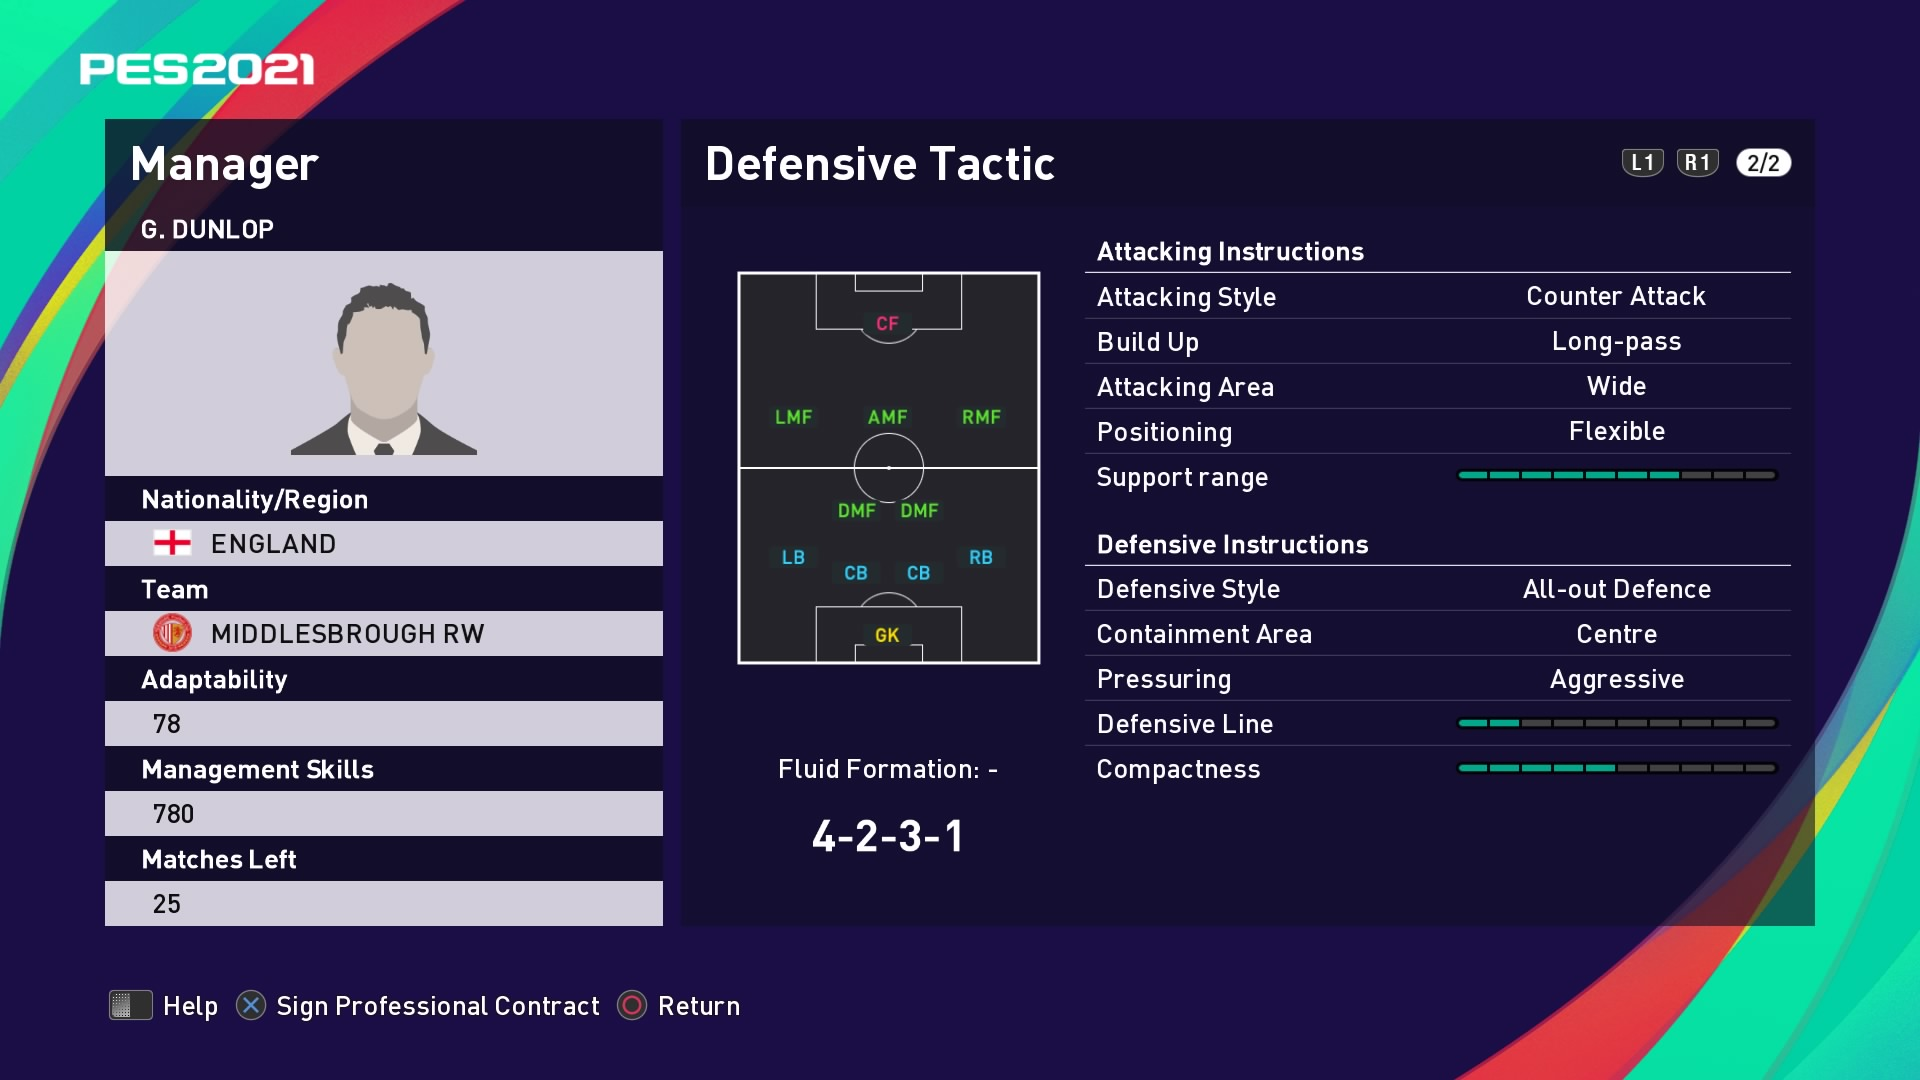 G. Dunlop (Neil Warnock) Defensive Tactic in PES 2021 myClub